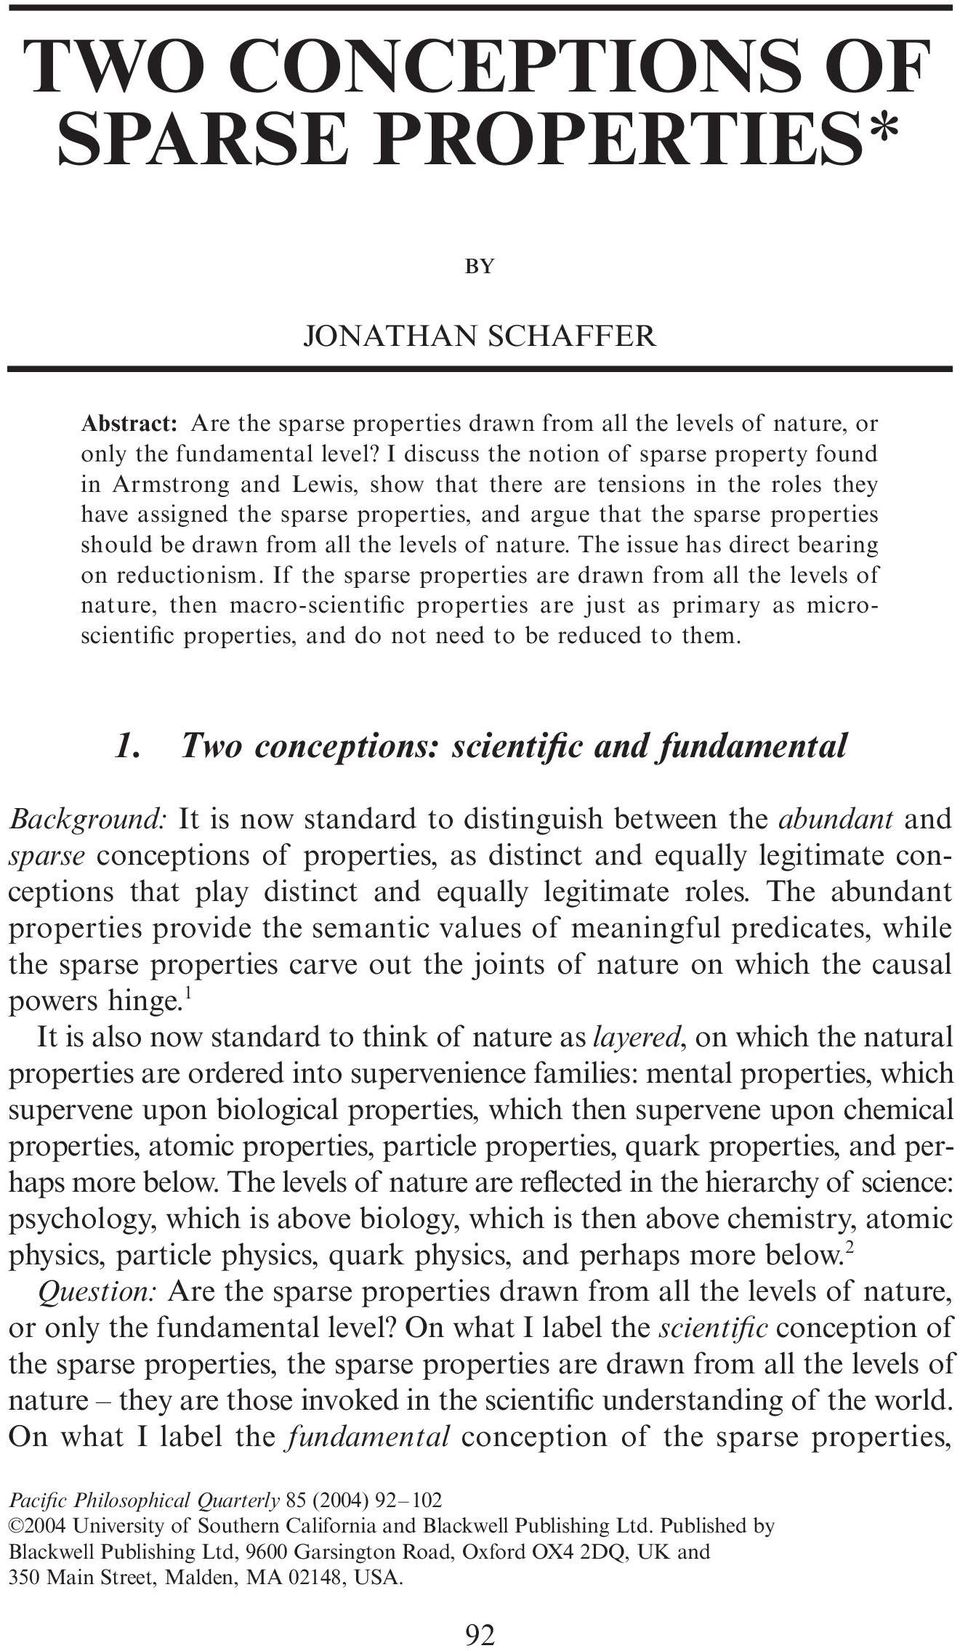 TWO CONCEPTIONS OF SPARSE PROPERTIES* by JONATHAN SCHAFFER Abstract: Are the sparse properties drawn from all the levels of nature, or only the fundamental level?